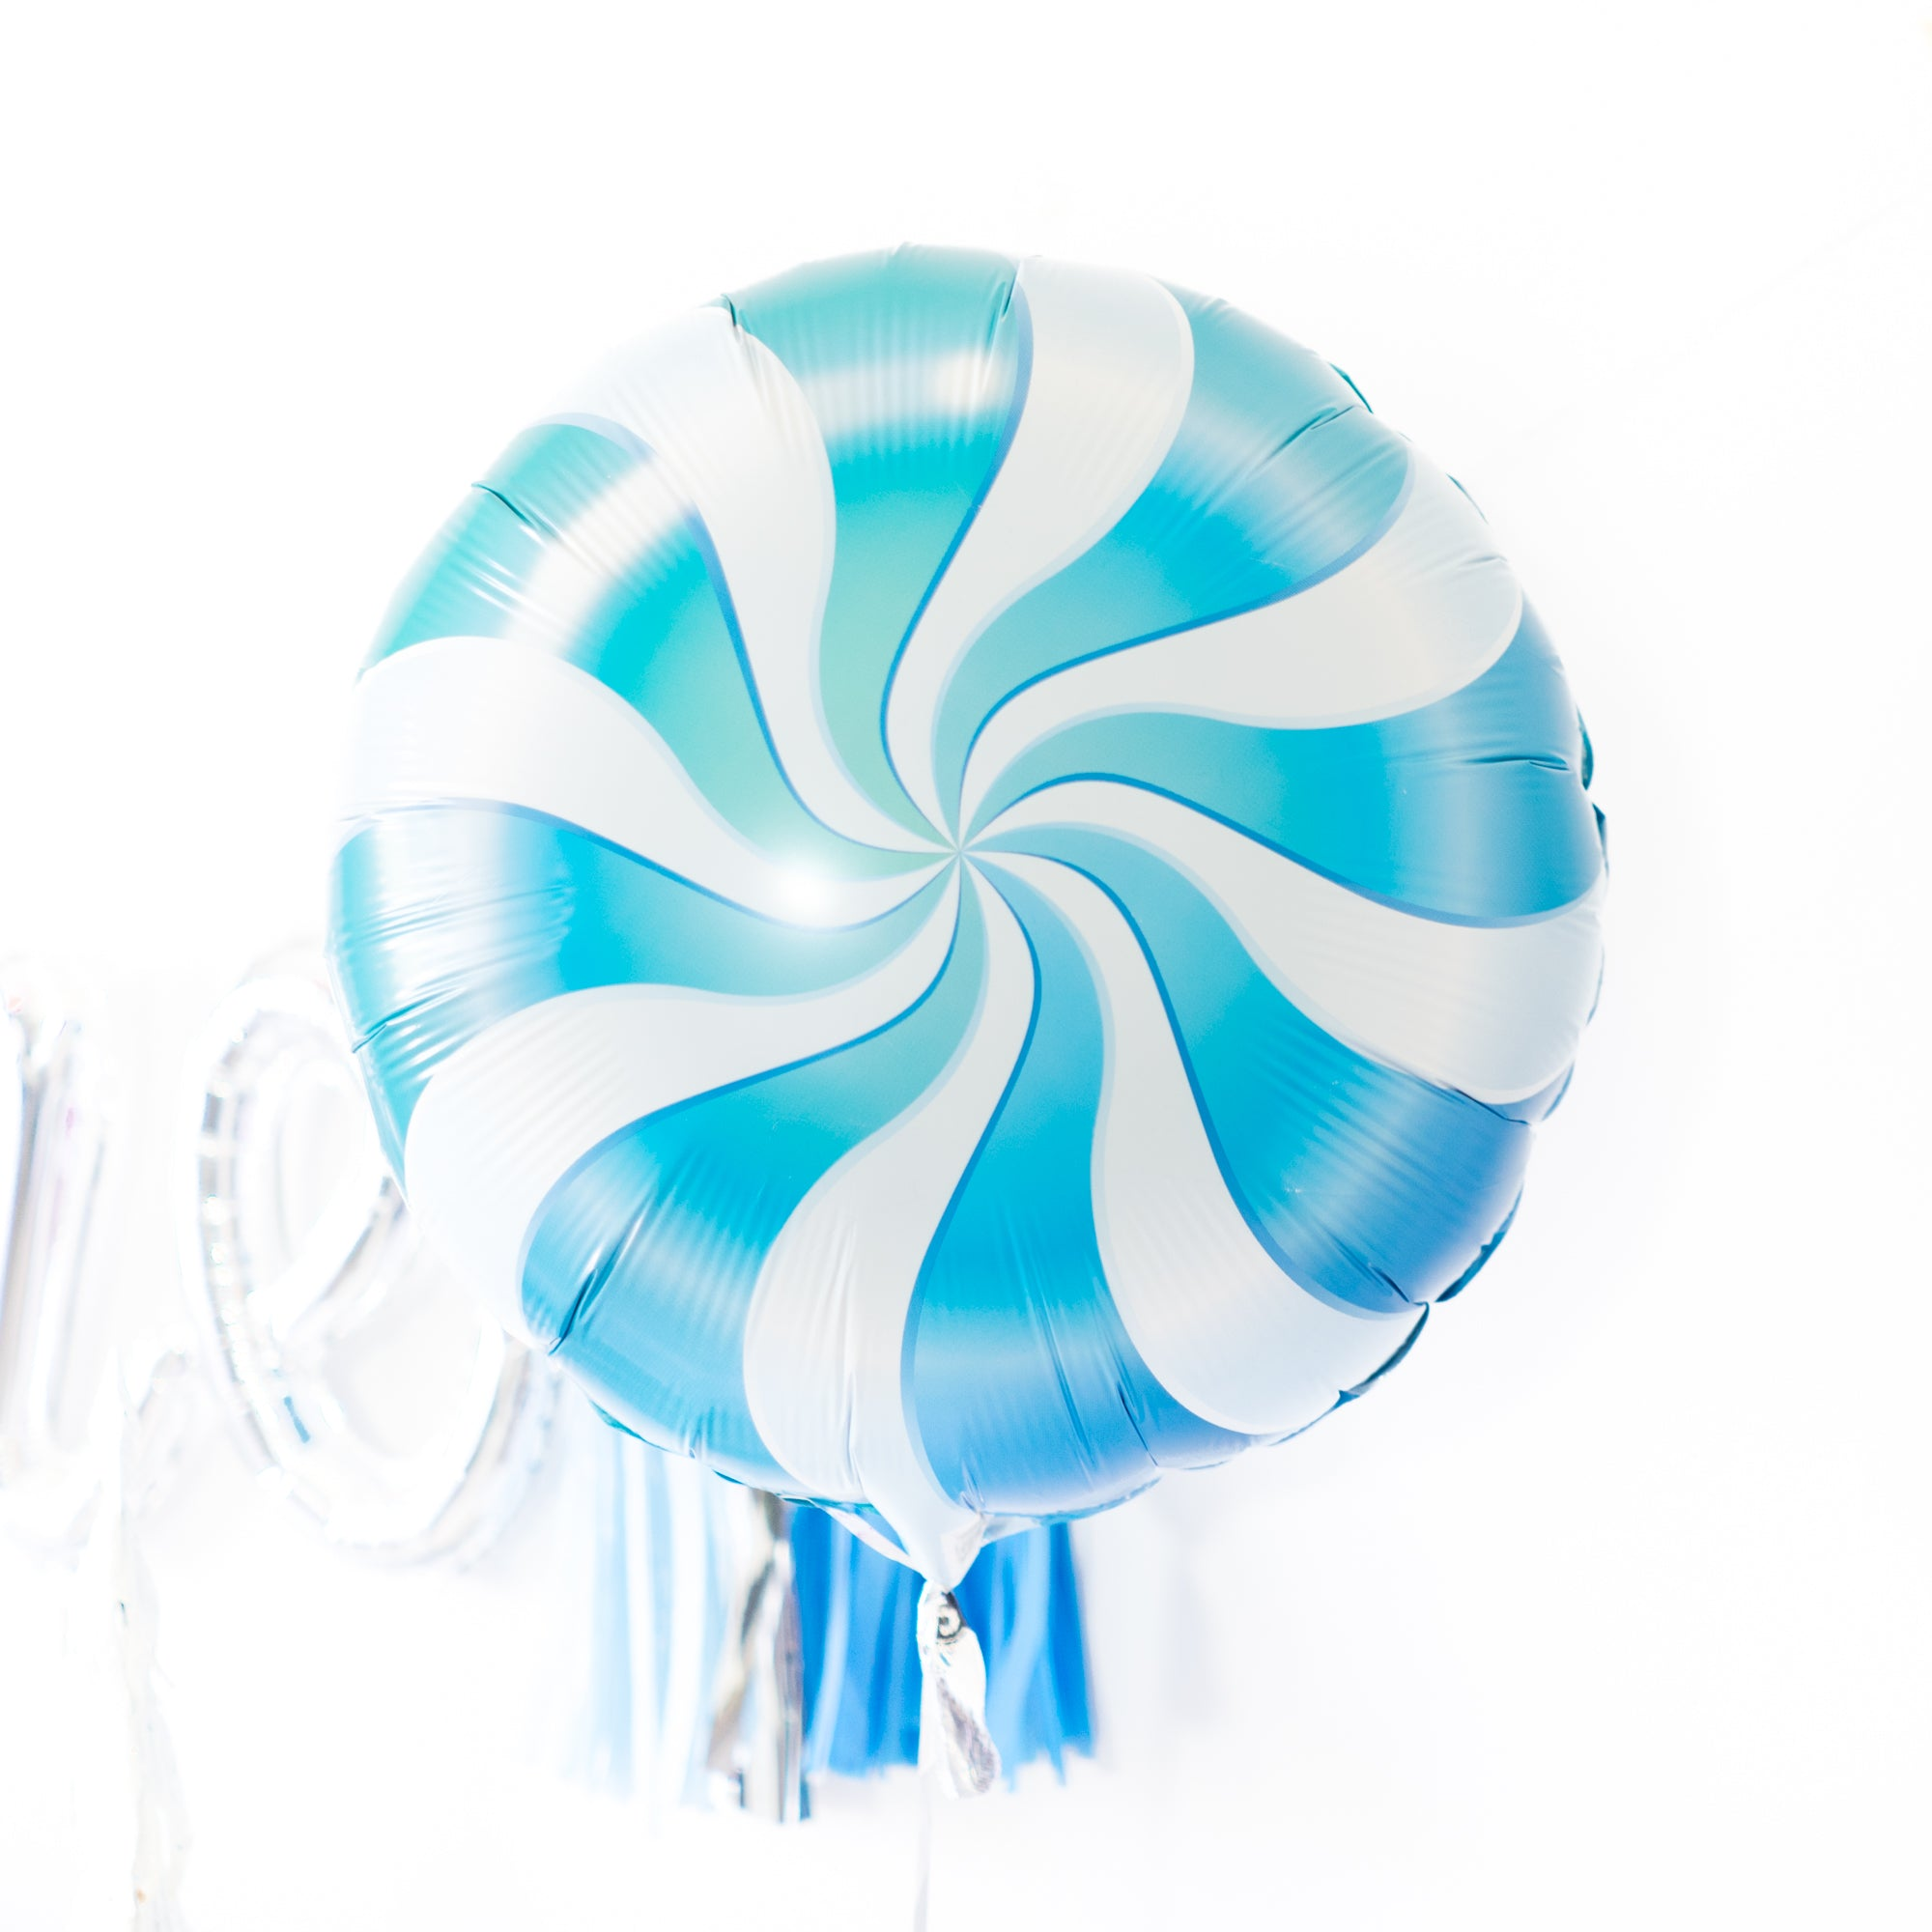 Blue Candy Swirl Balloon